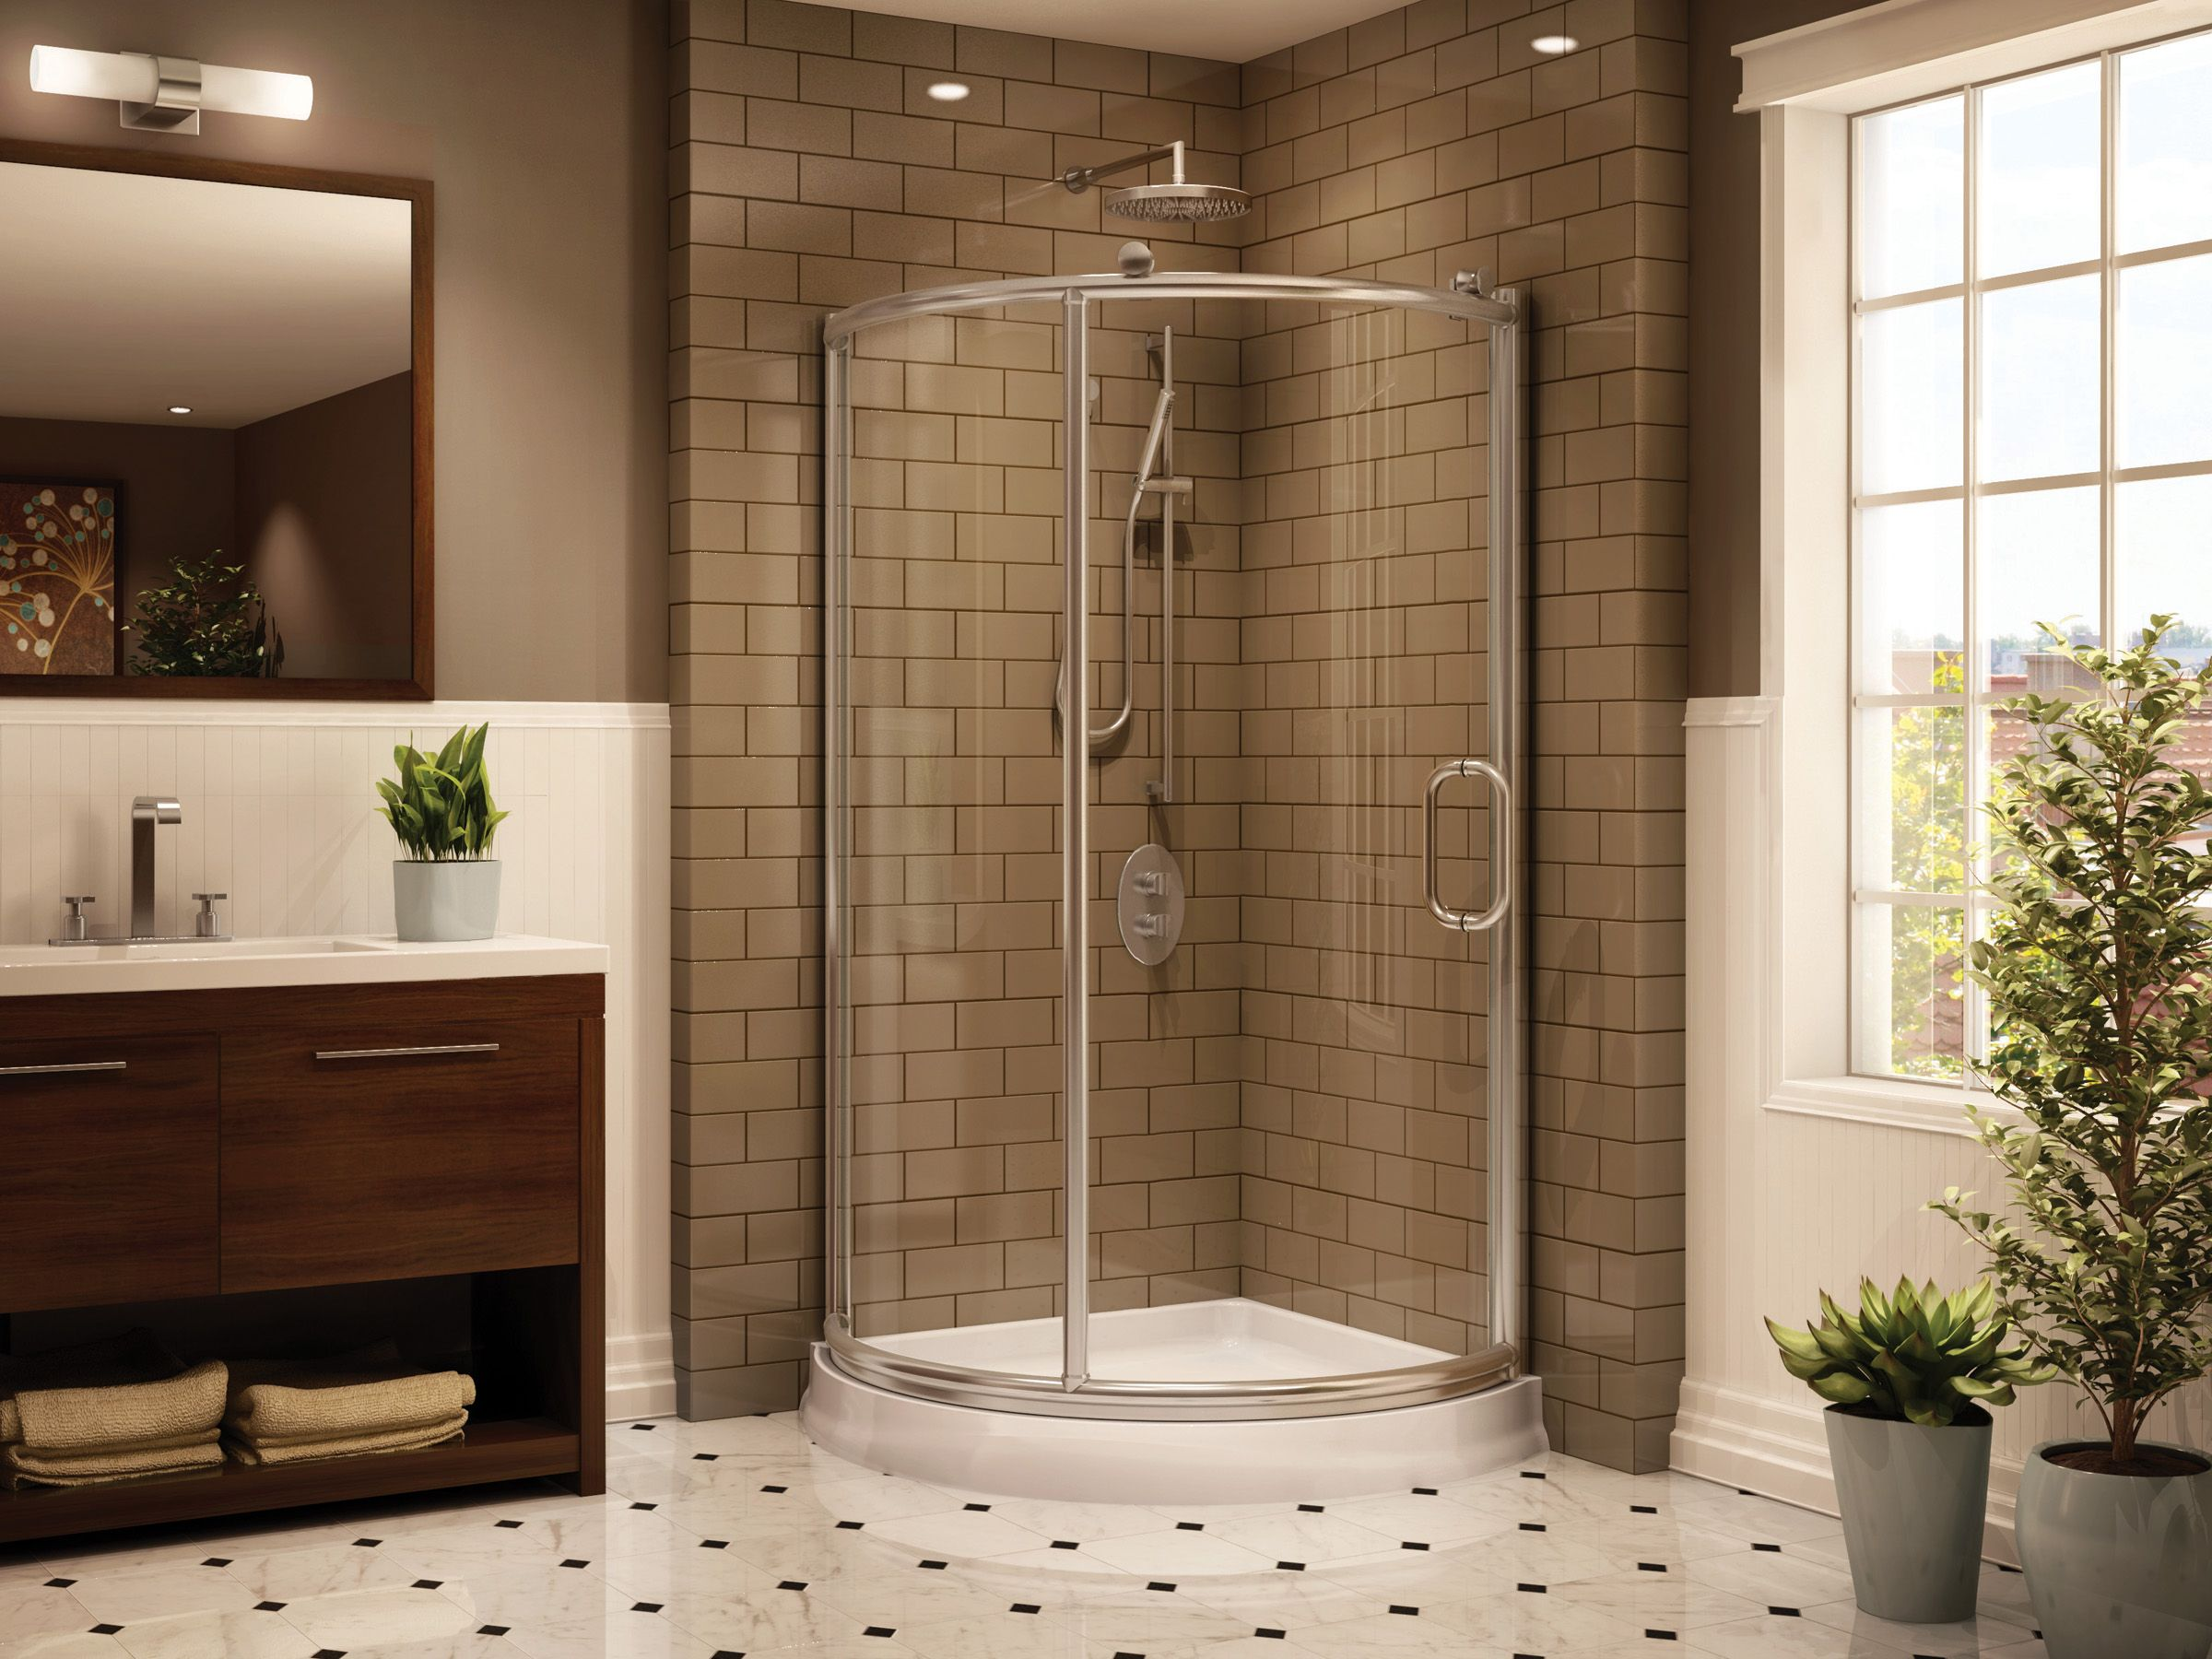 Amazing Bathroom Ideas For Small Space With Cool Corner Shower Units And Brick Pattern Tiling Floor Plus Corner Shower Corner Shower Units Corner Shower Stalls